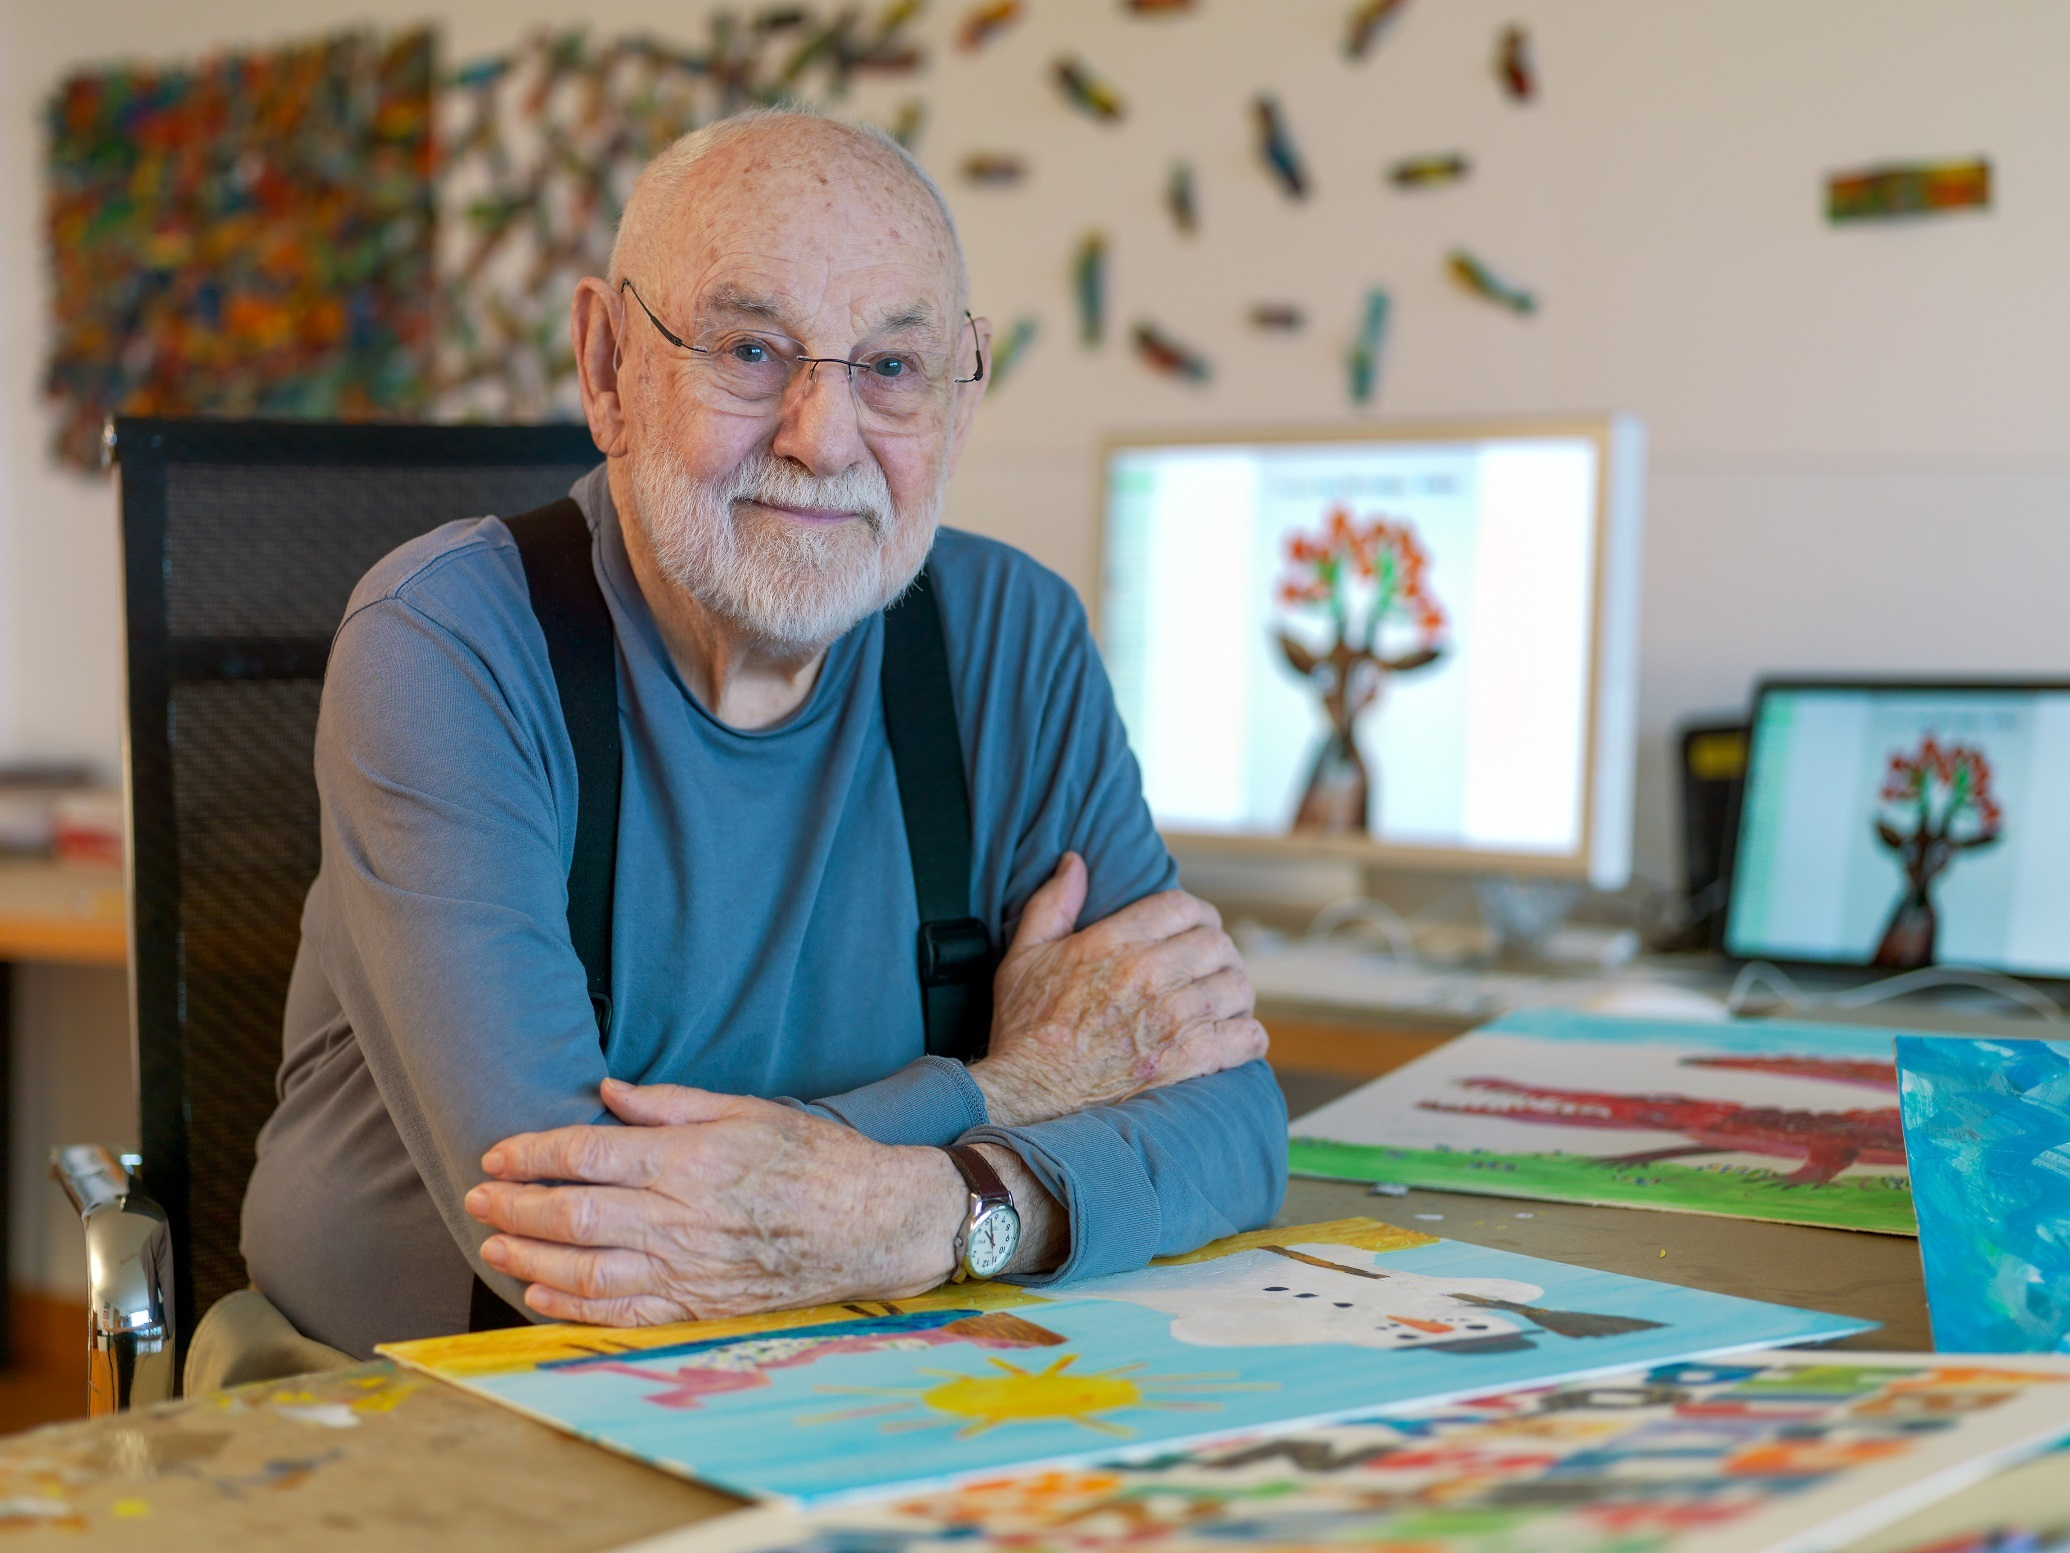 『THE ART OF ERIC CARLE エリック・カール展』